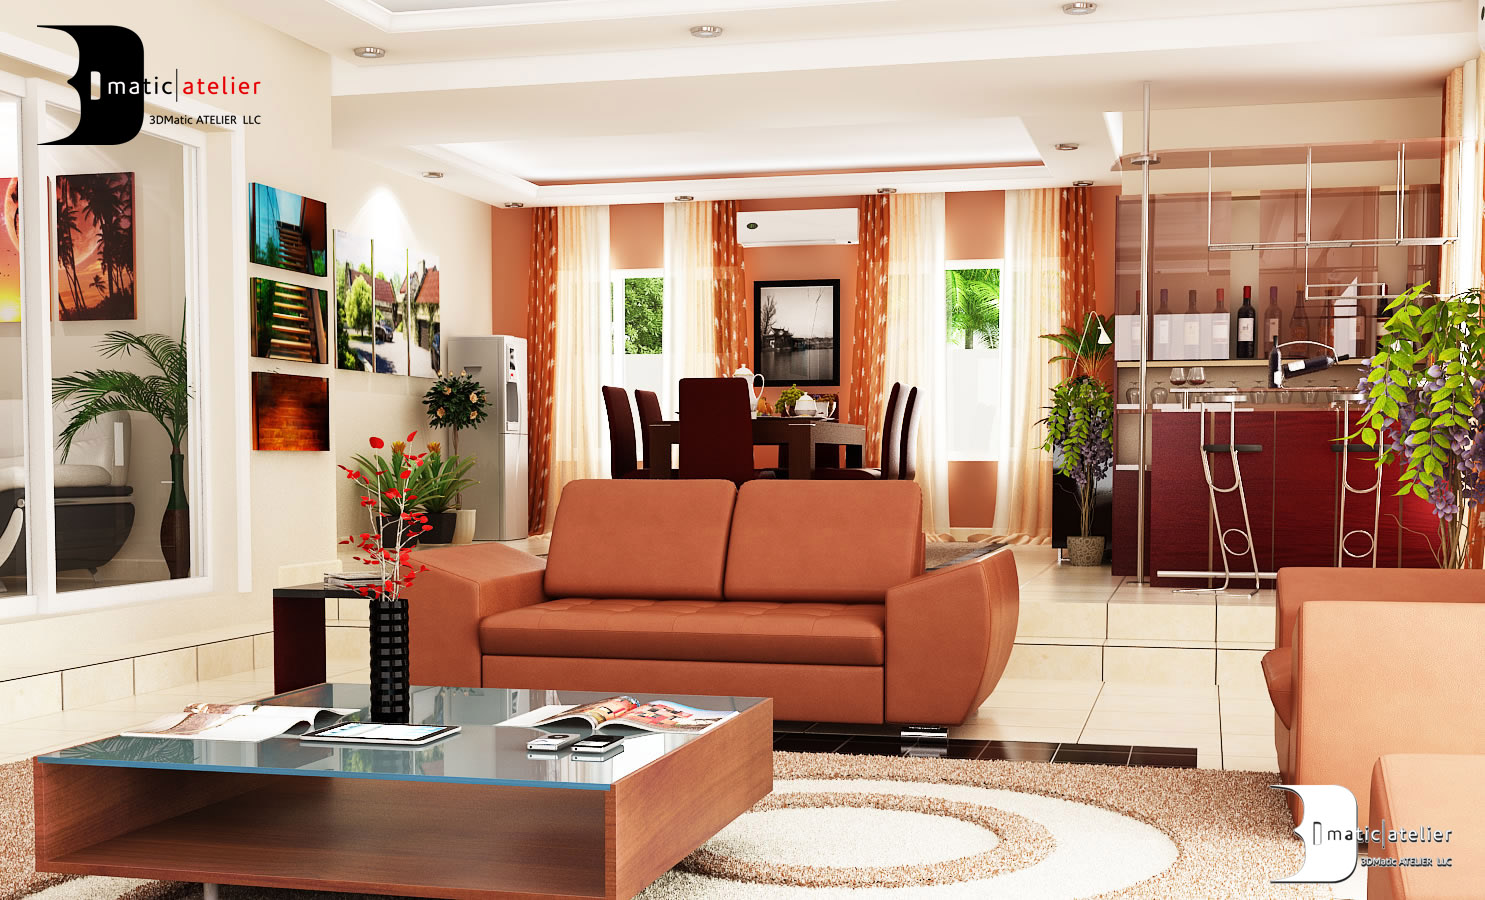 Interior design lekki nigeria by olamidun akinde at Living room decoration in nigeria